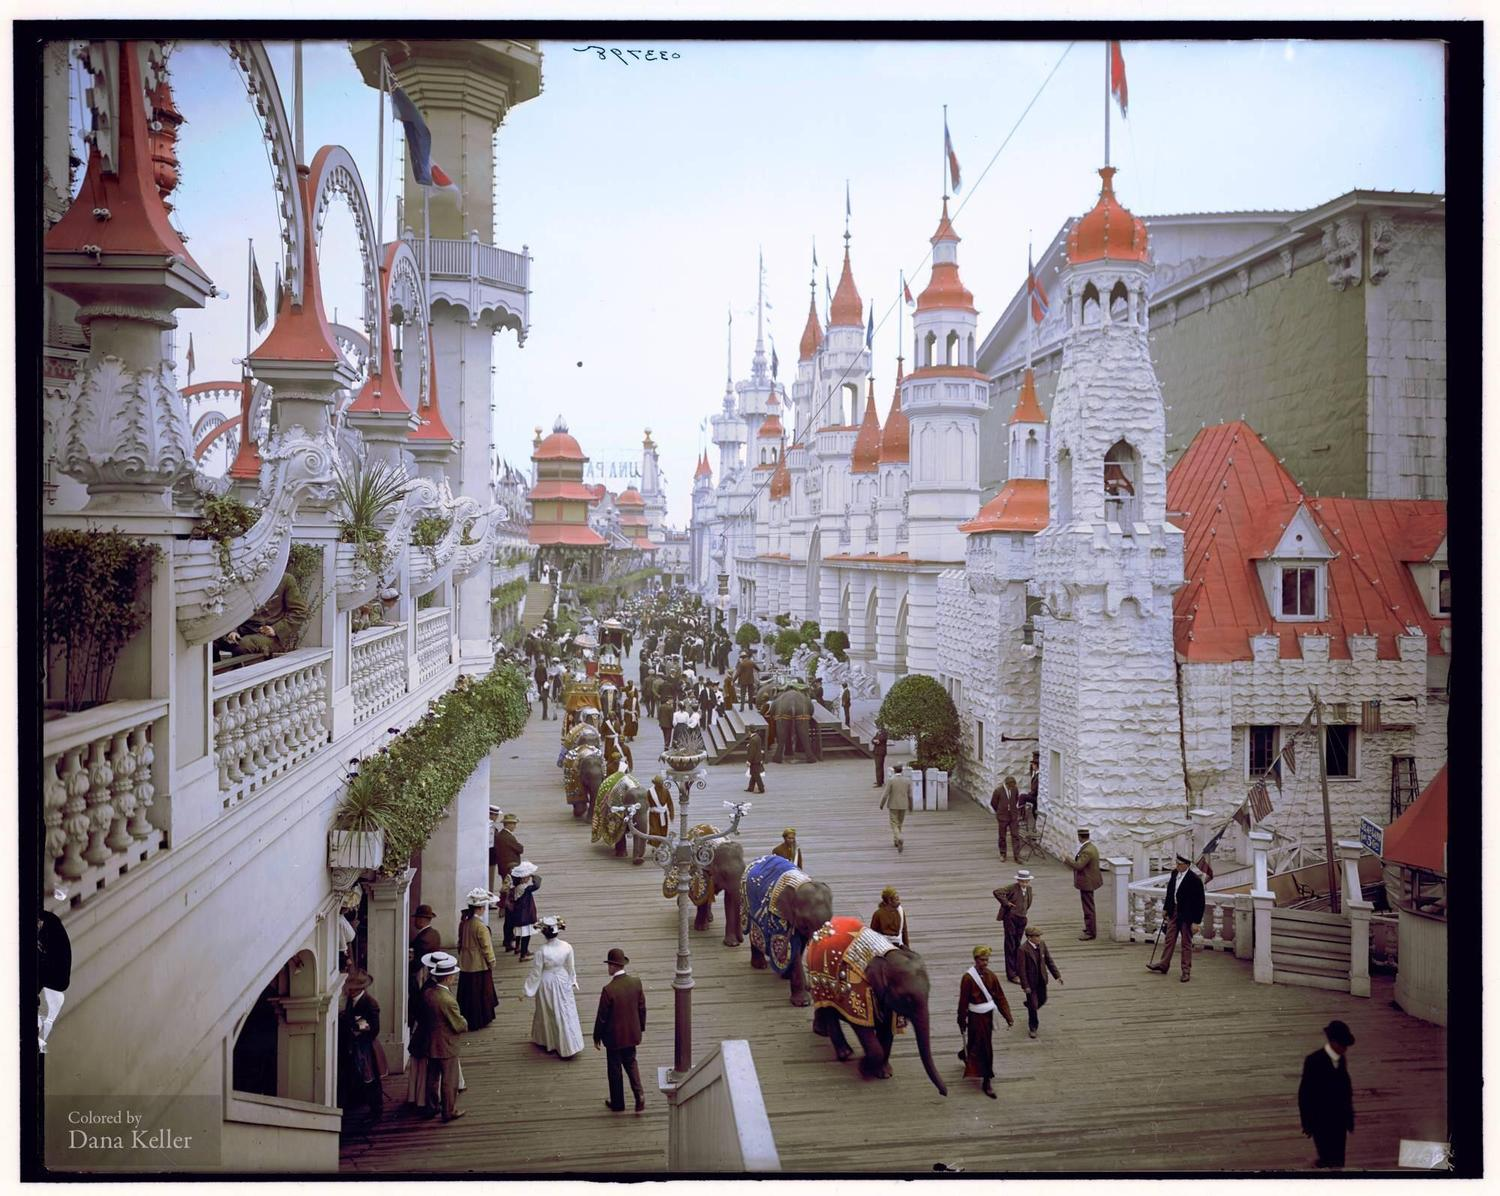 Elephants in Luna Park, the promenade, Coney Island, New York circa 1907 (colorized by Dana Keller)